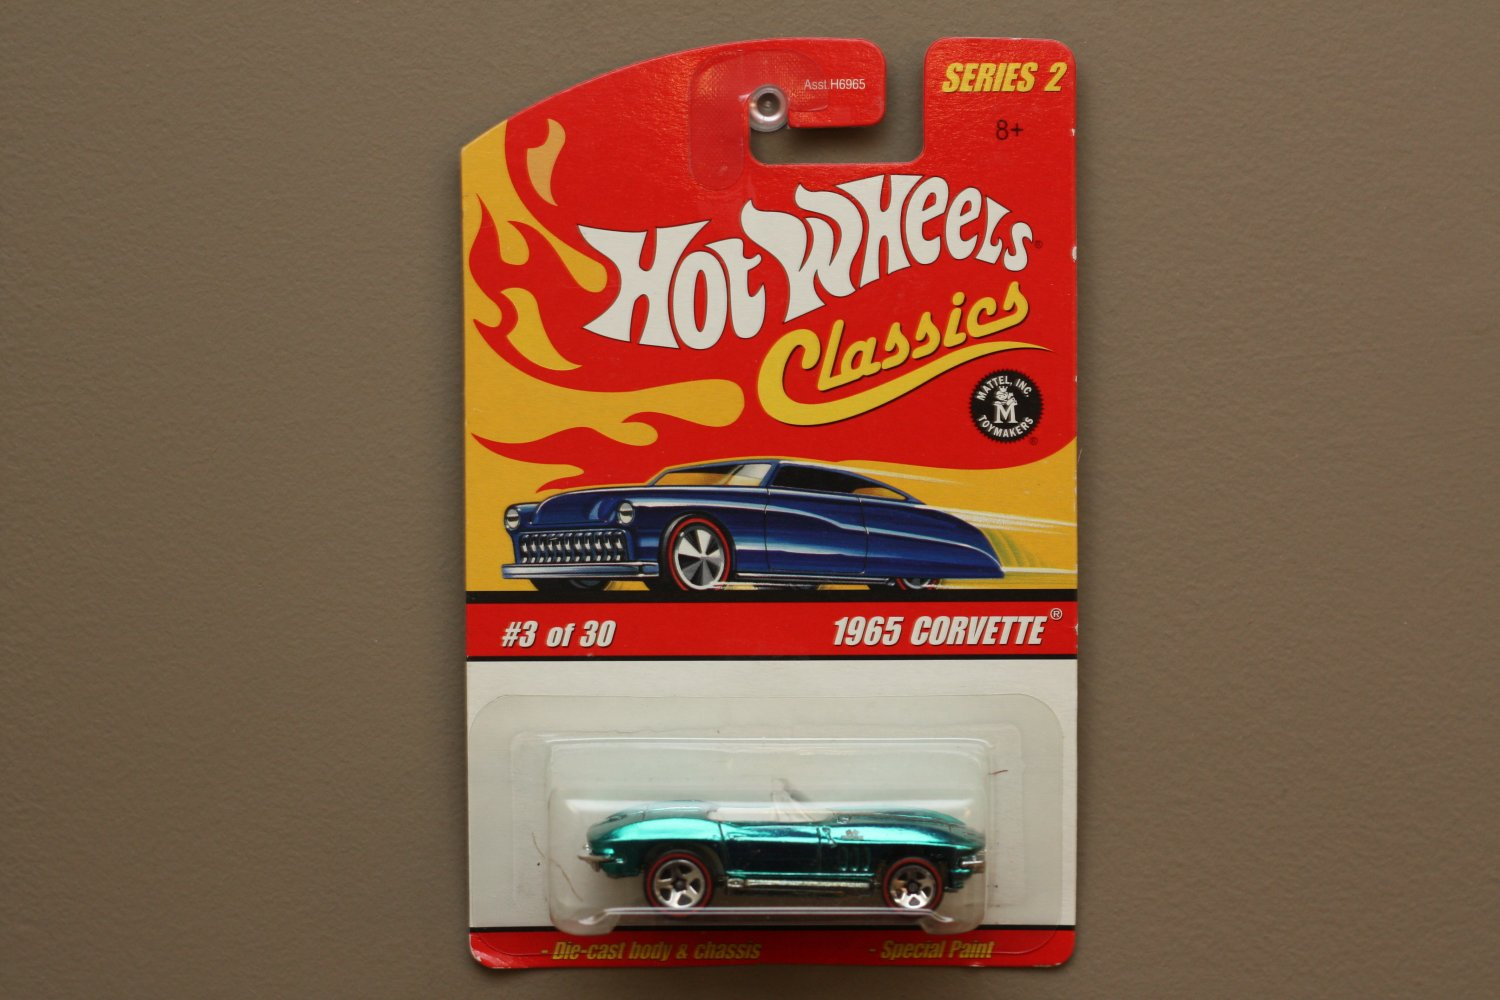 Hot Wheels 2006 Classics Series 2 1965 Corvette (chrome teal)